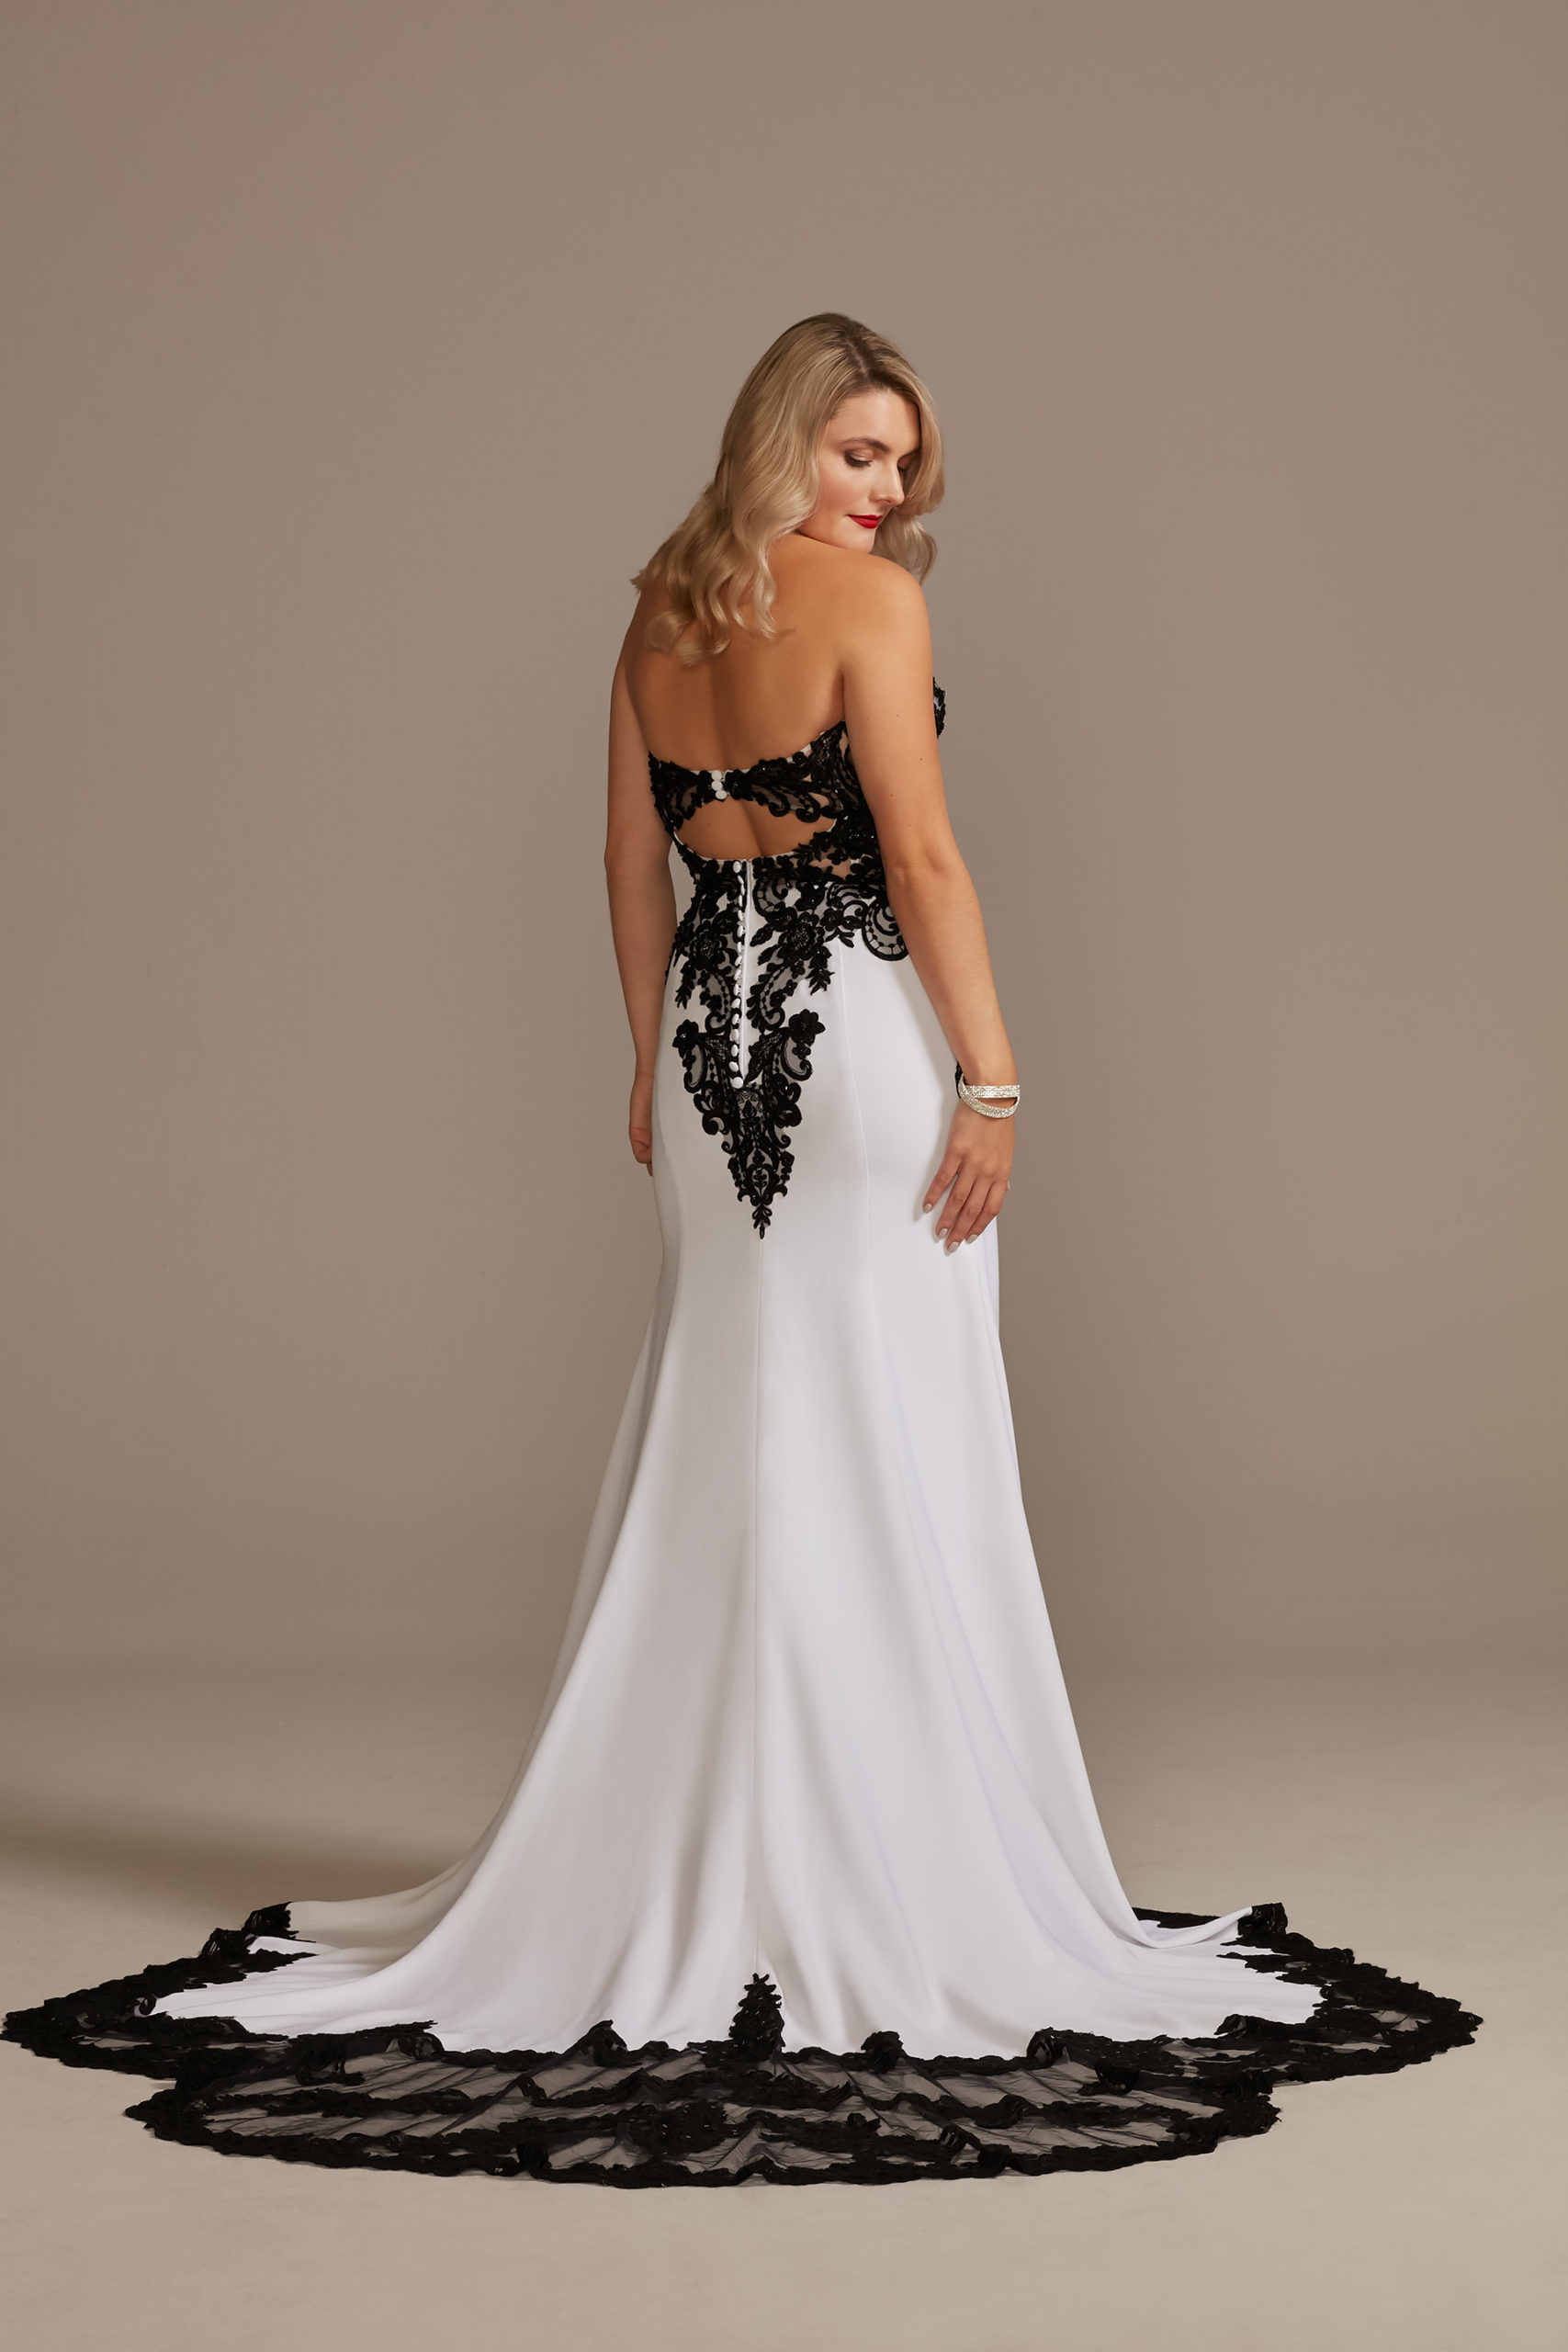 unconventional wedding dress with black lace